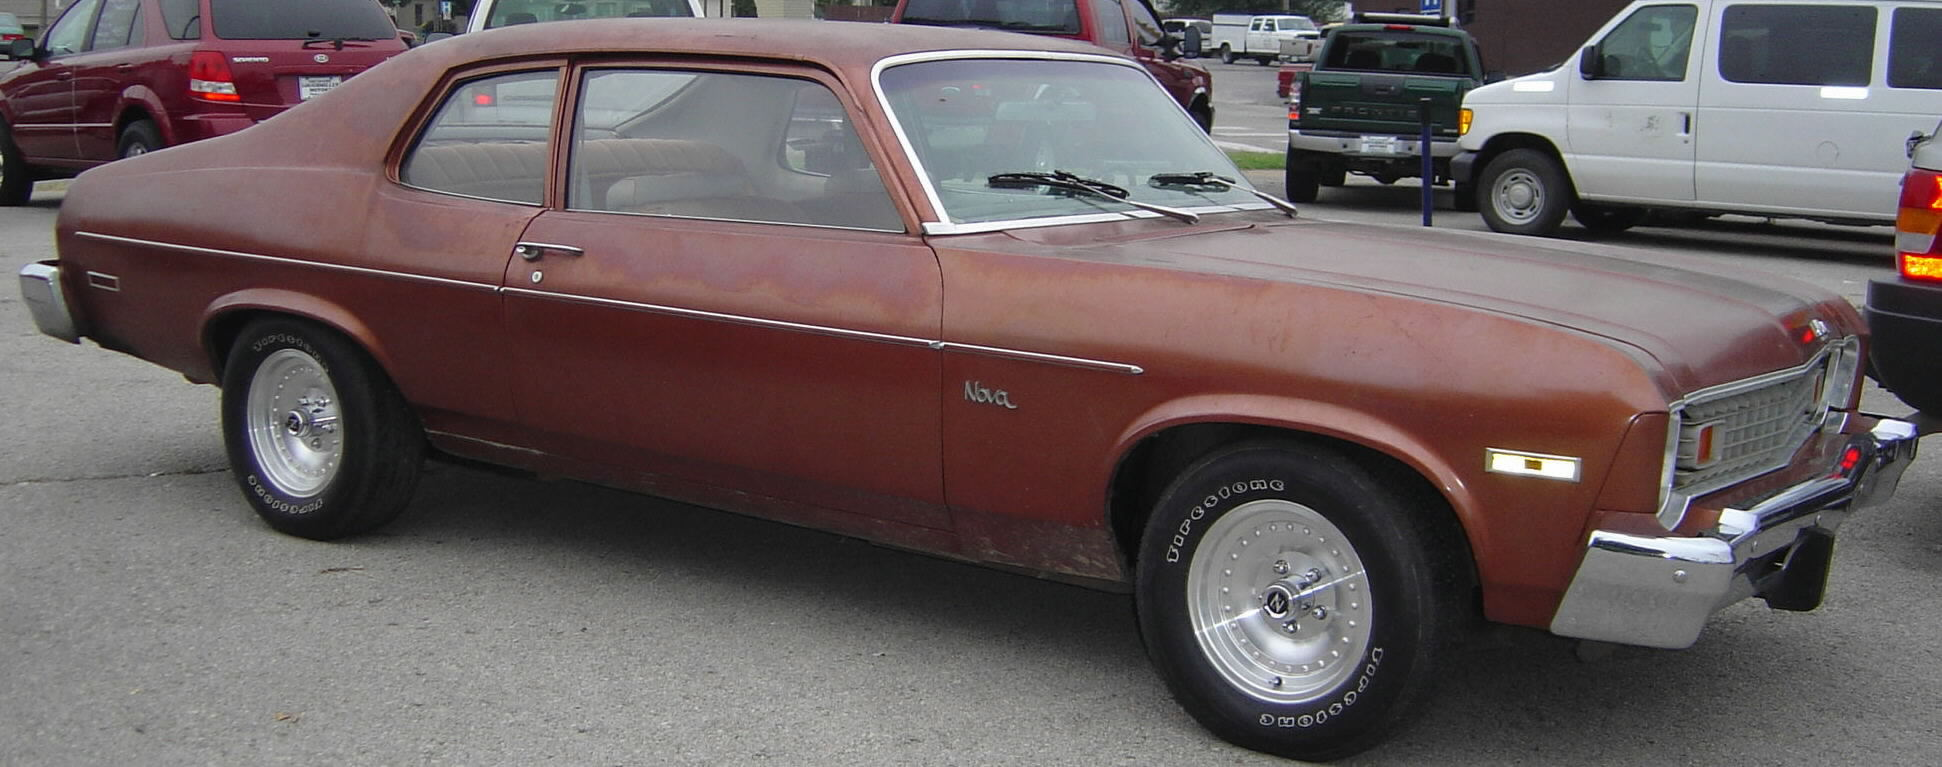 1974 Chevy Nova, SOLD!, maroon, tan cloth interior, in-line 6 cyl, auto, ...